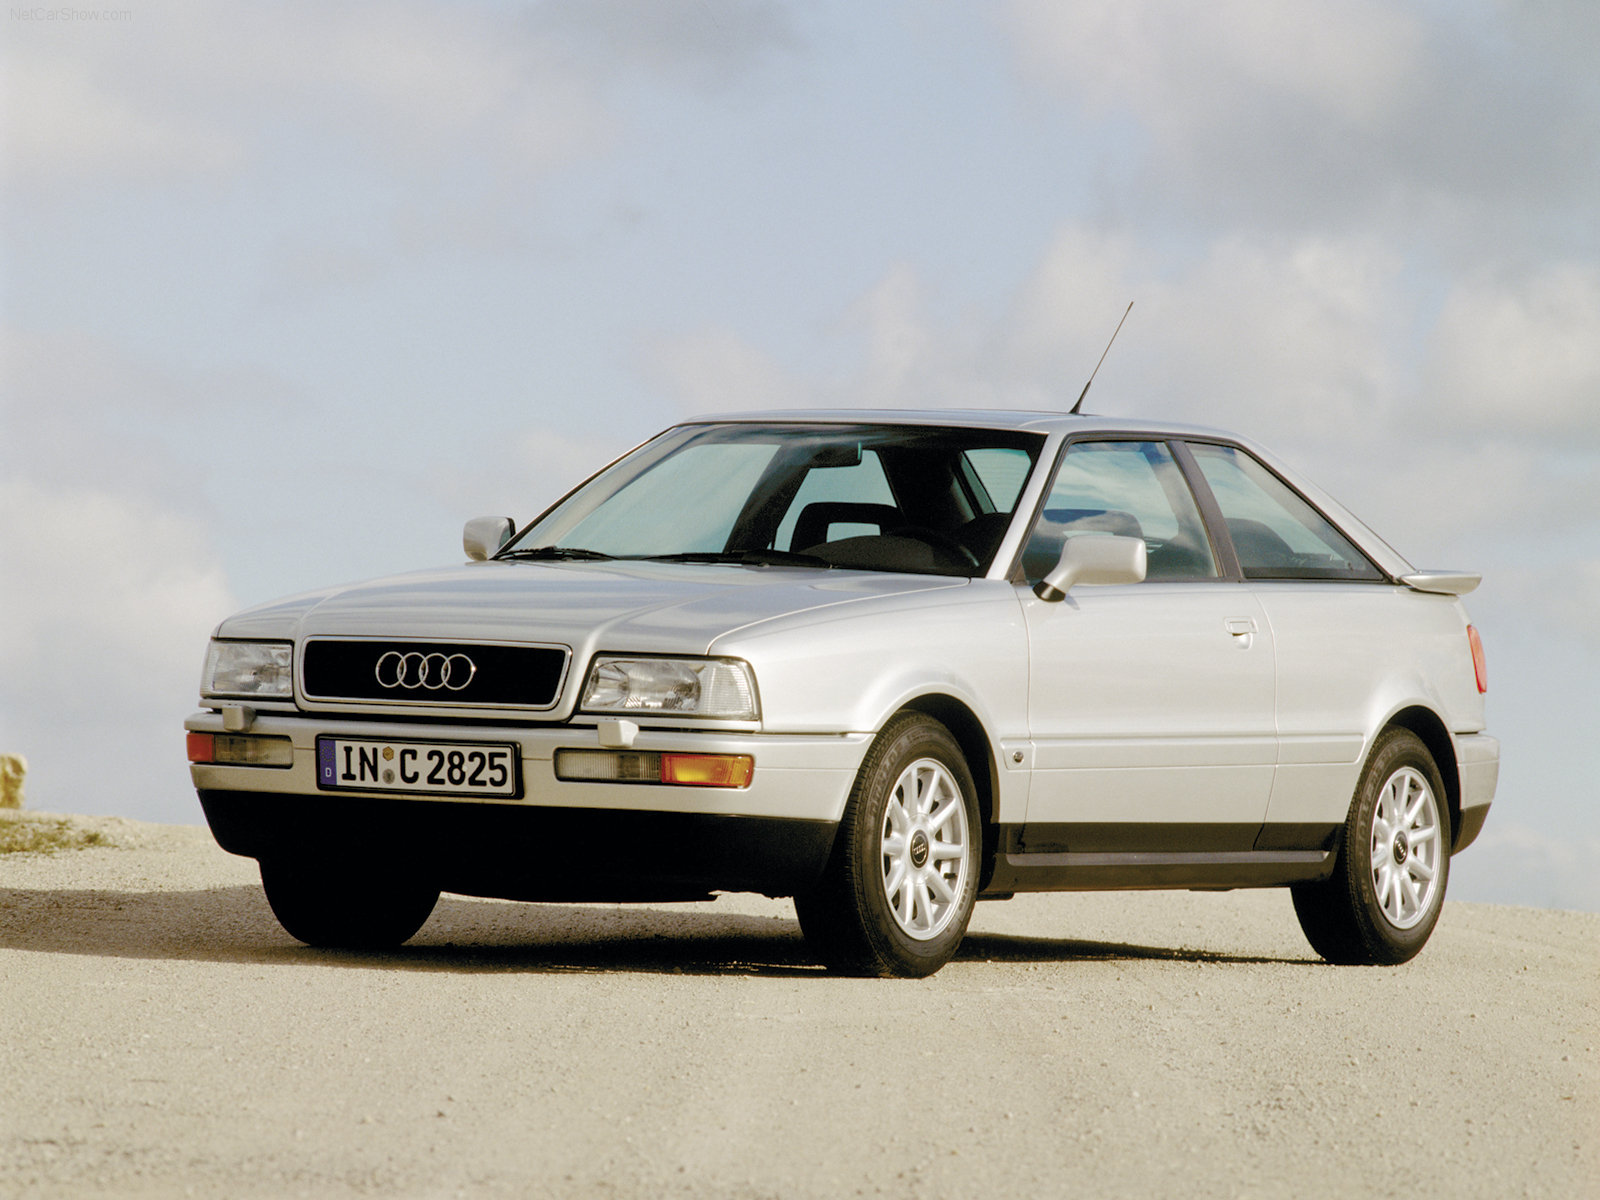 audi coupe images #2